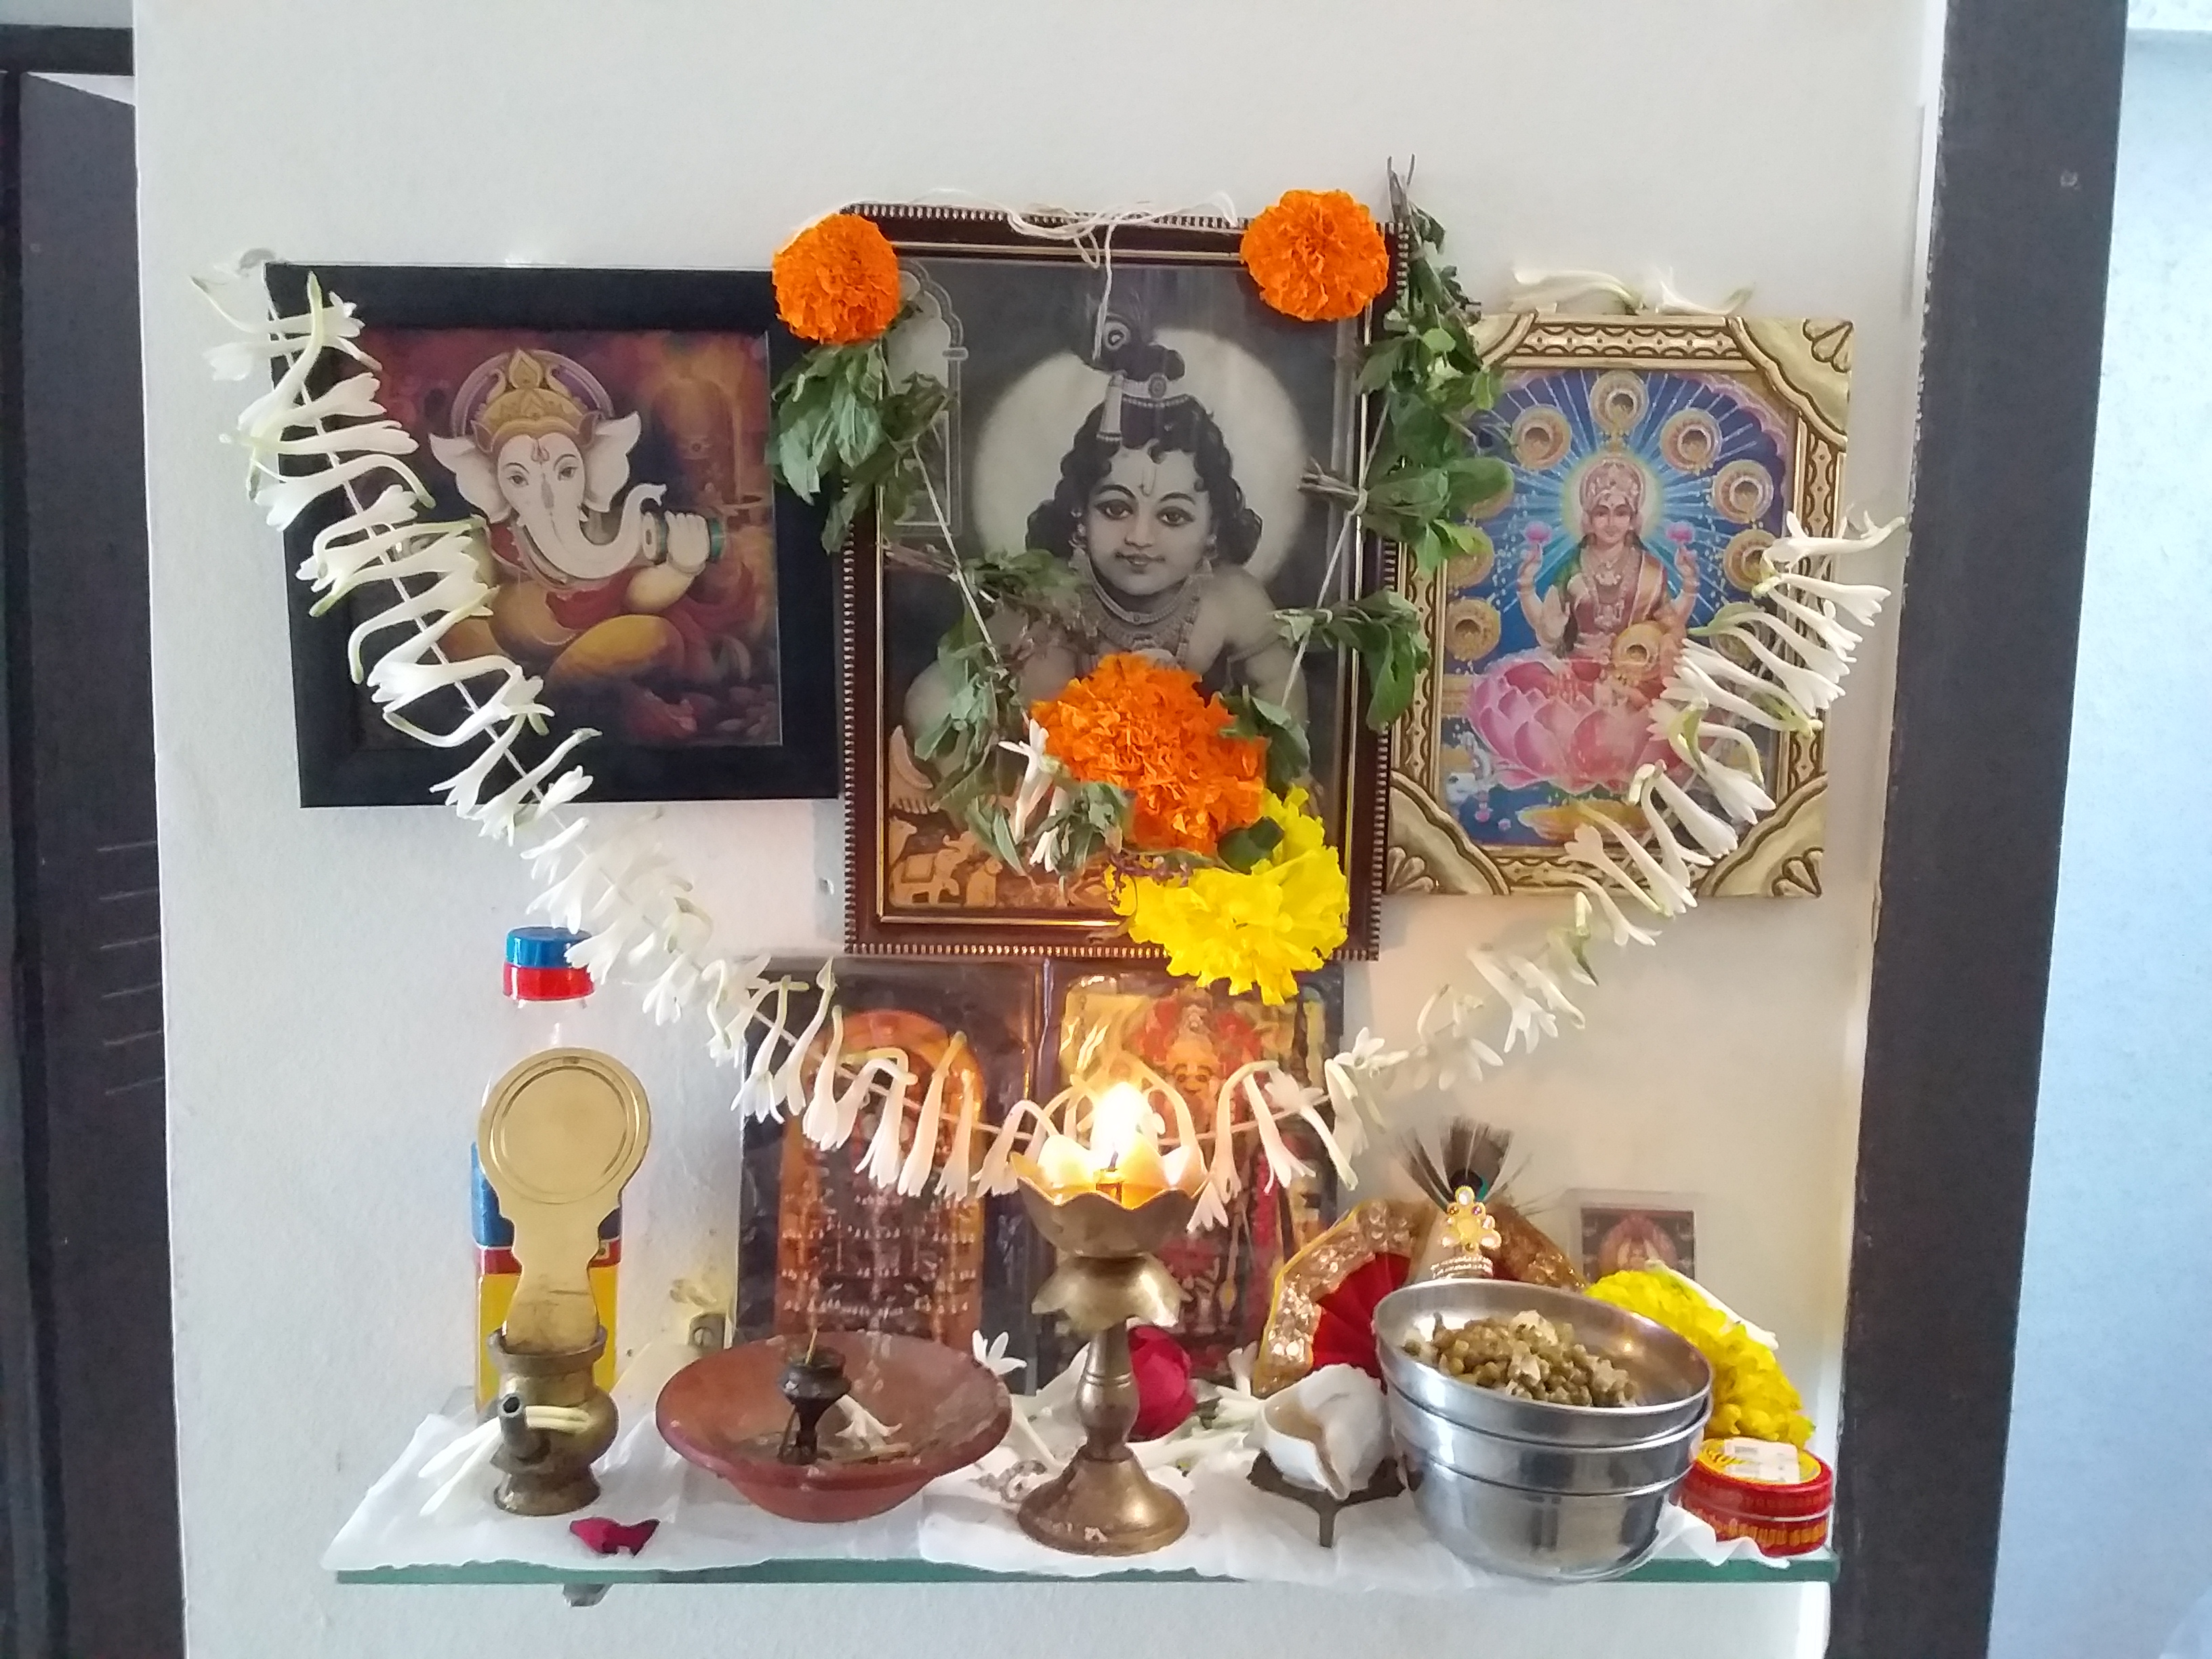 Photo of Our pooja place decorated for Shri Krishna Jayanthi. Photo Credit: Pradeep Mohandas